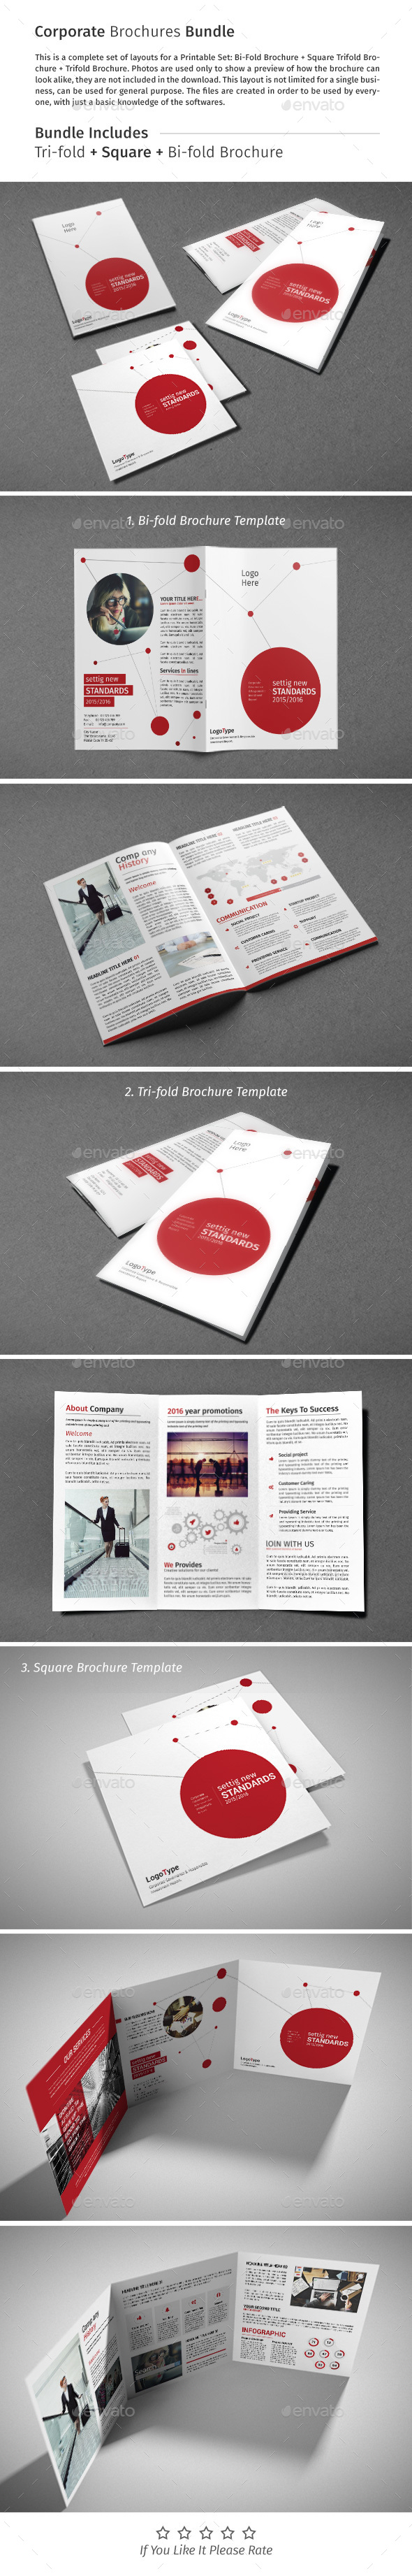 Brochure Bundle 05 - Corporate Brochures